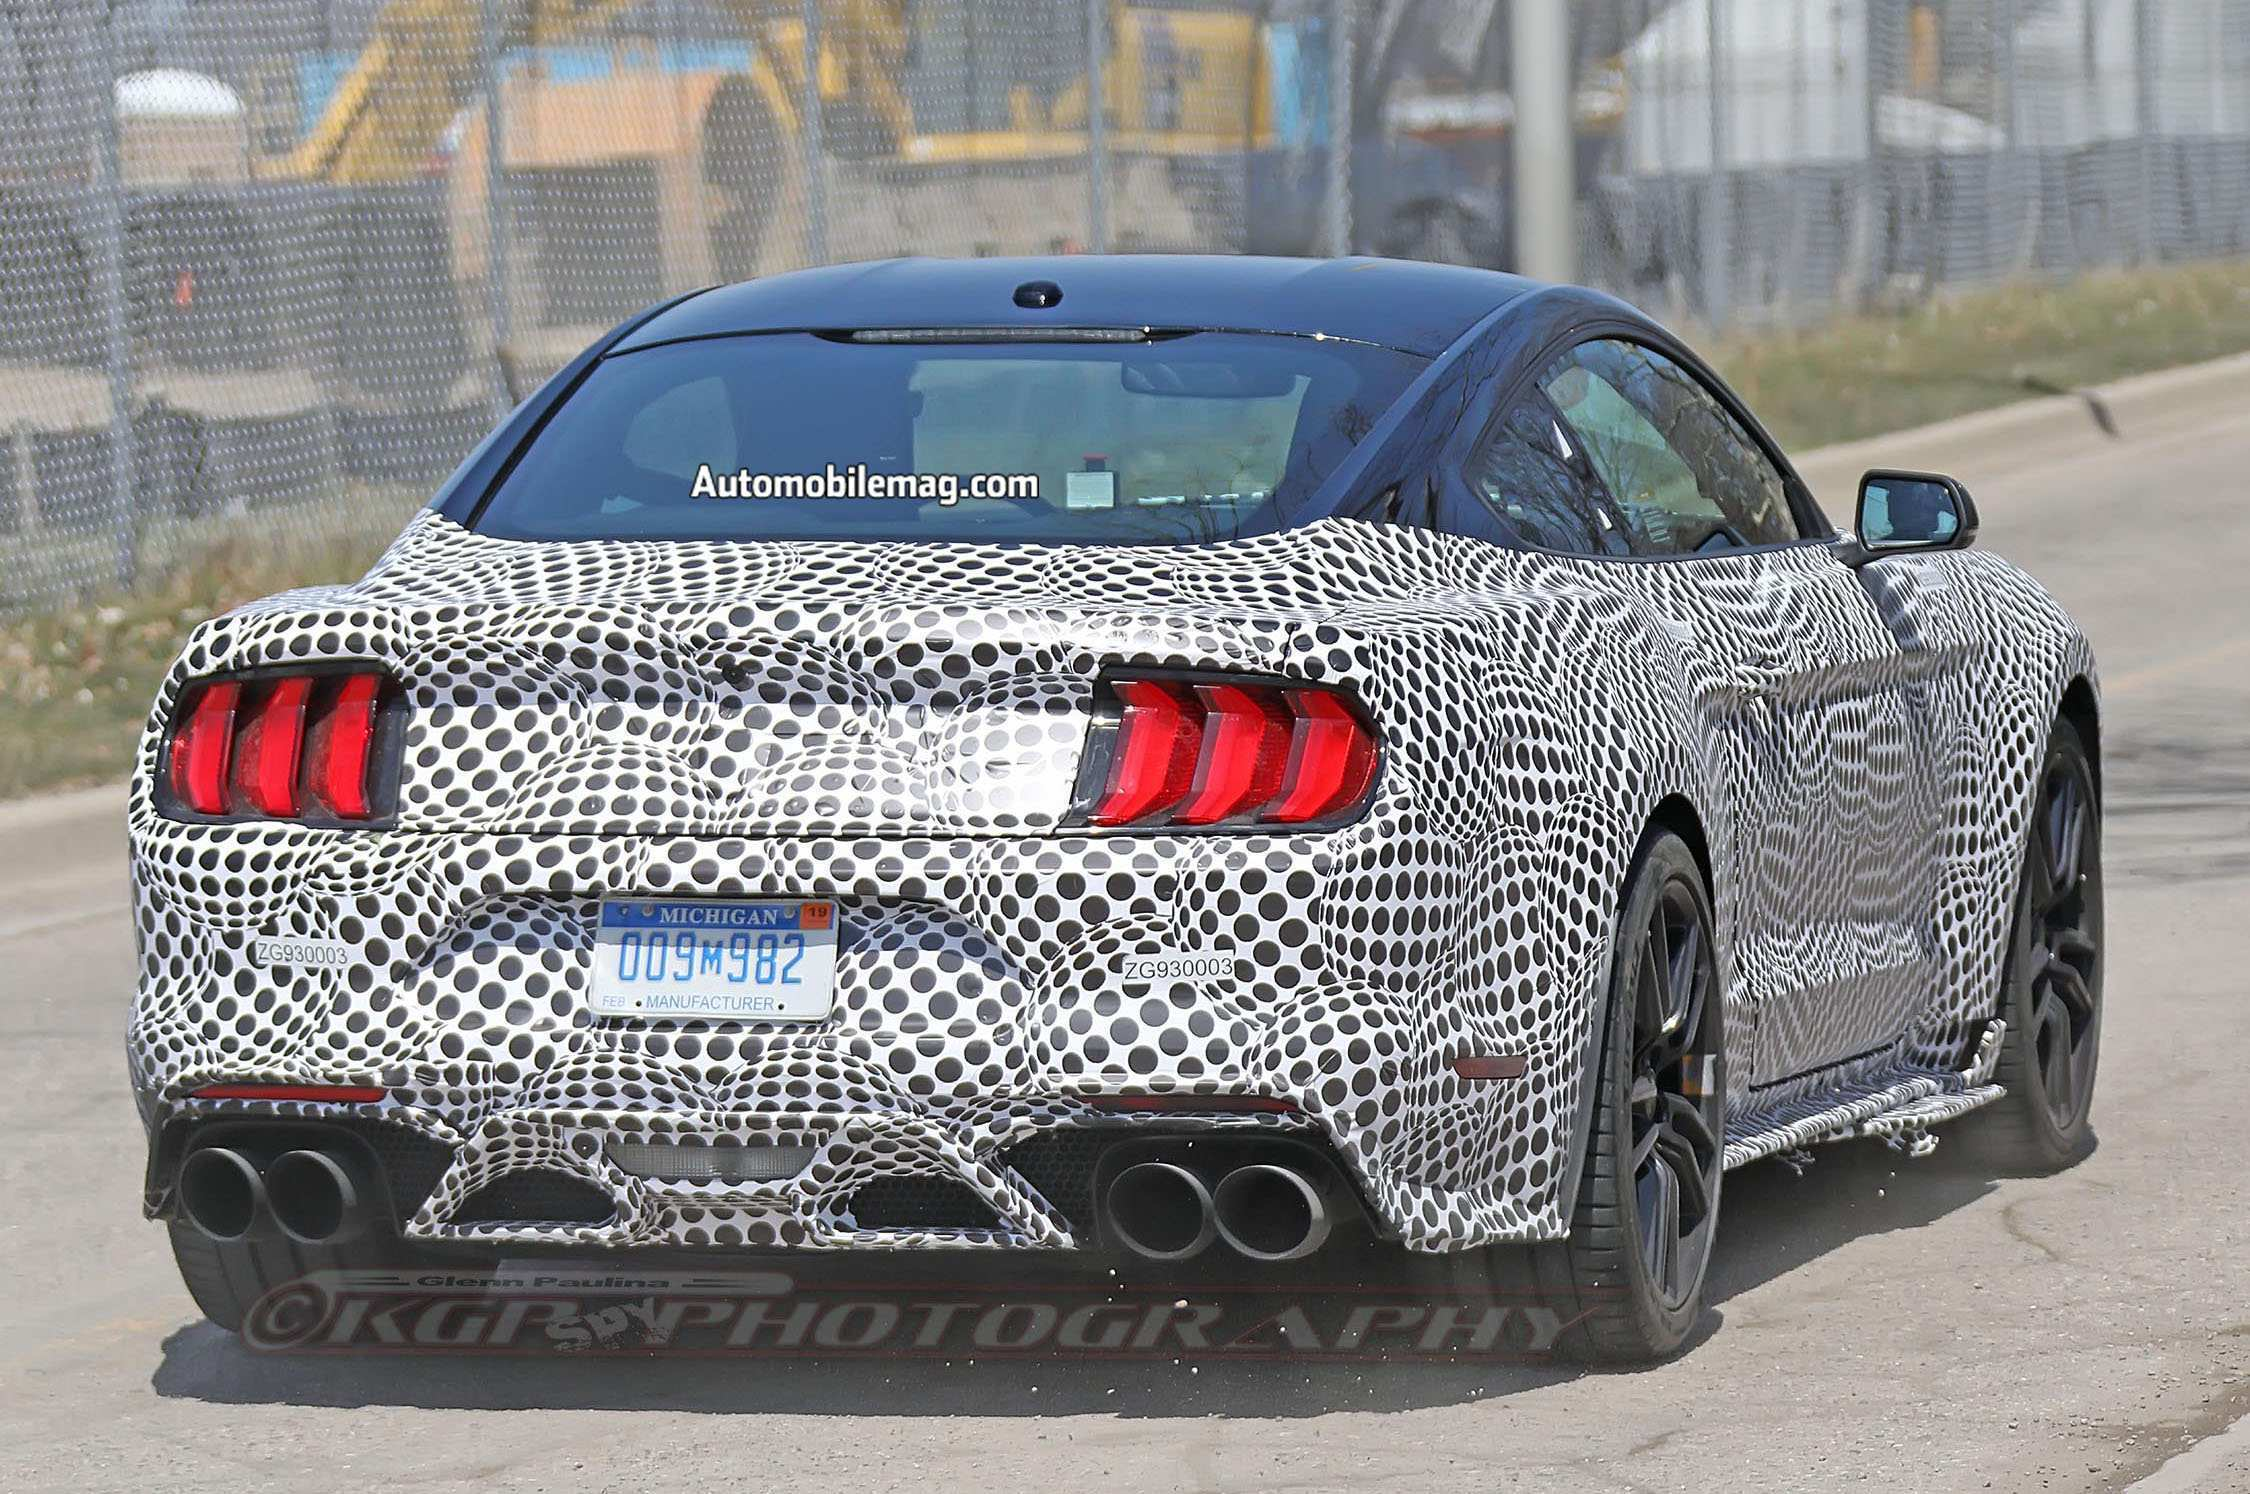 51 New 2020 Ford Mustang Cobra Configurations by 2020 Ford Mustang Cobra